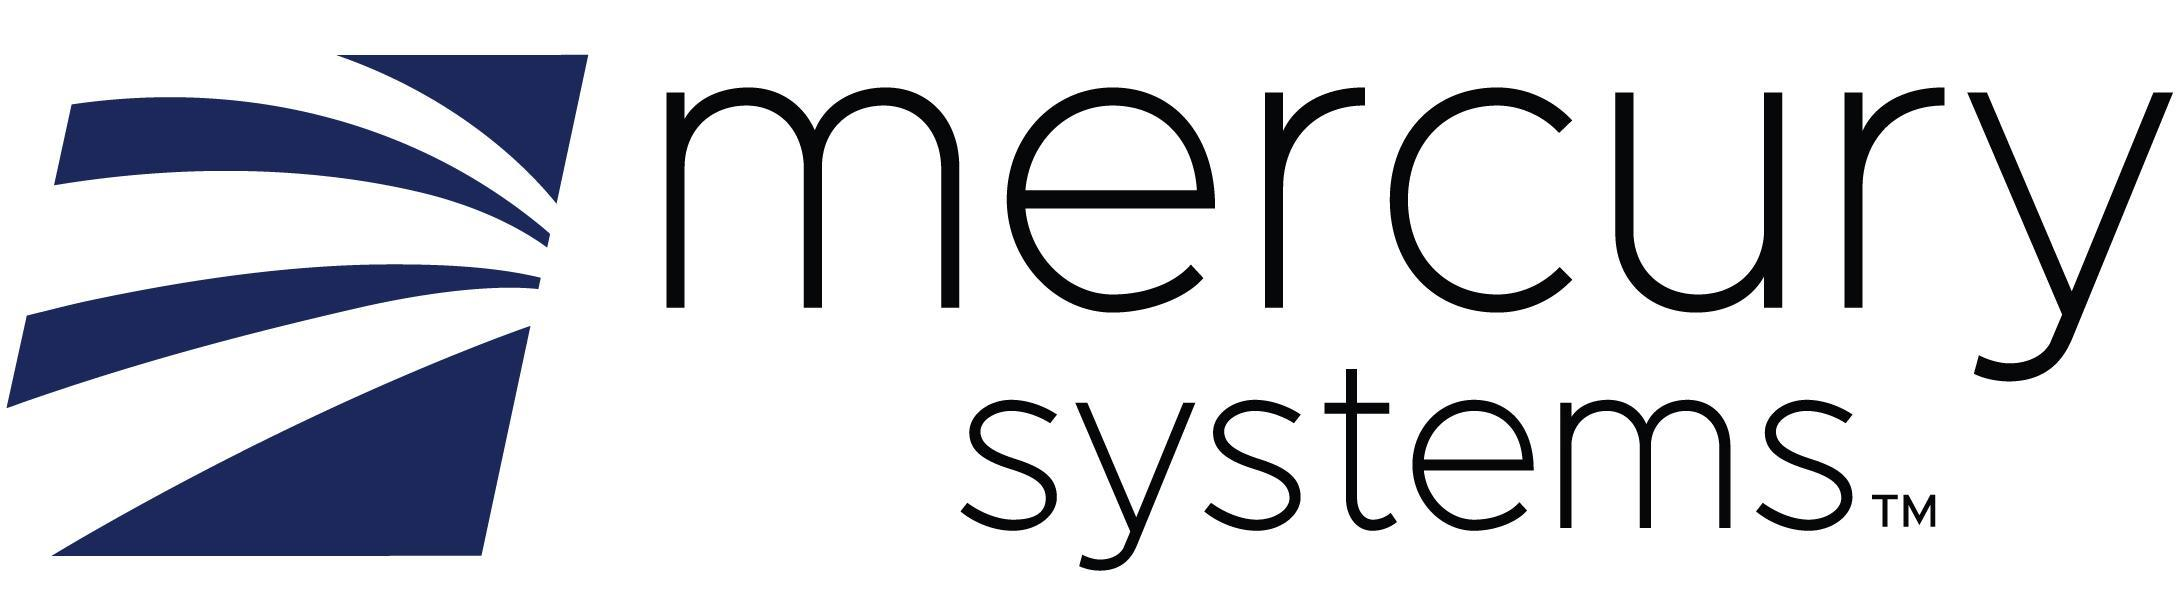 Mercury Systems, Trusted Mission Solutions Logo